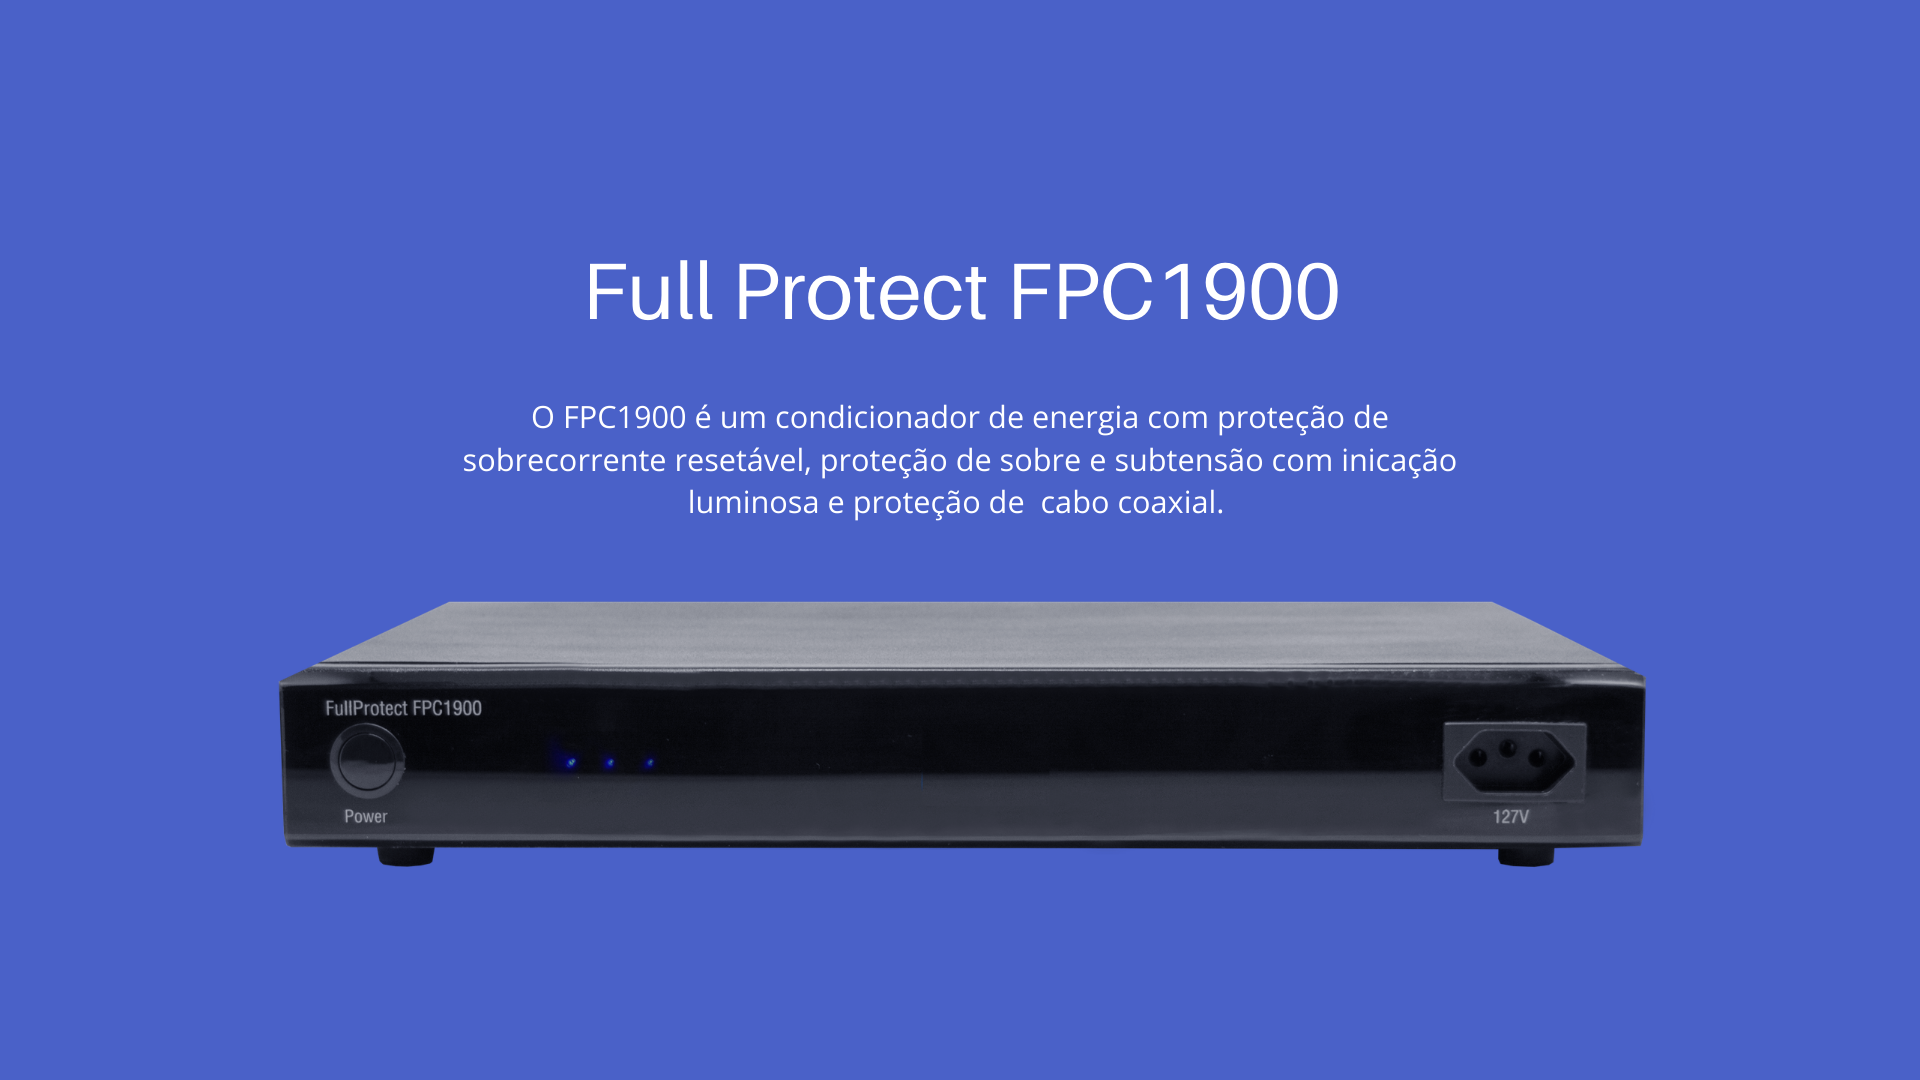 Full Protect FPC1900